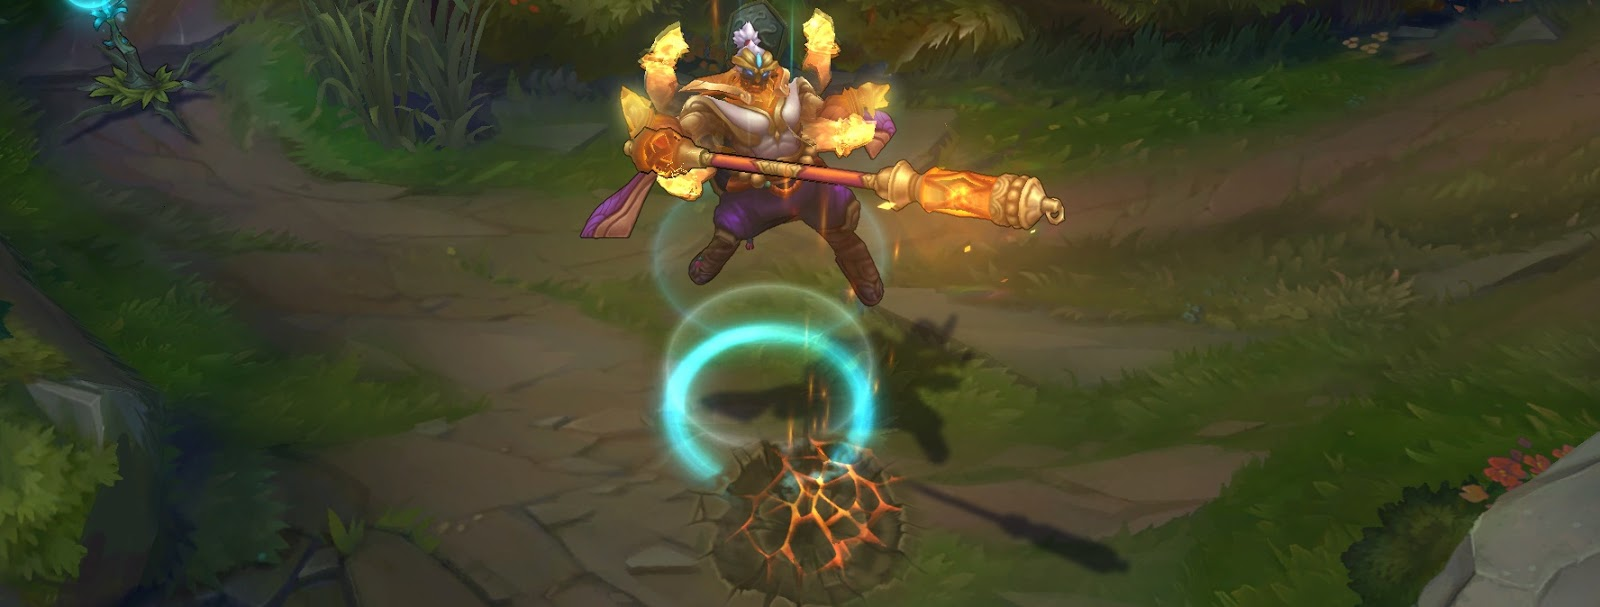 I Guess You Can Say Jax New Skin